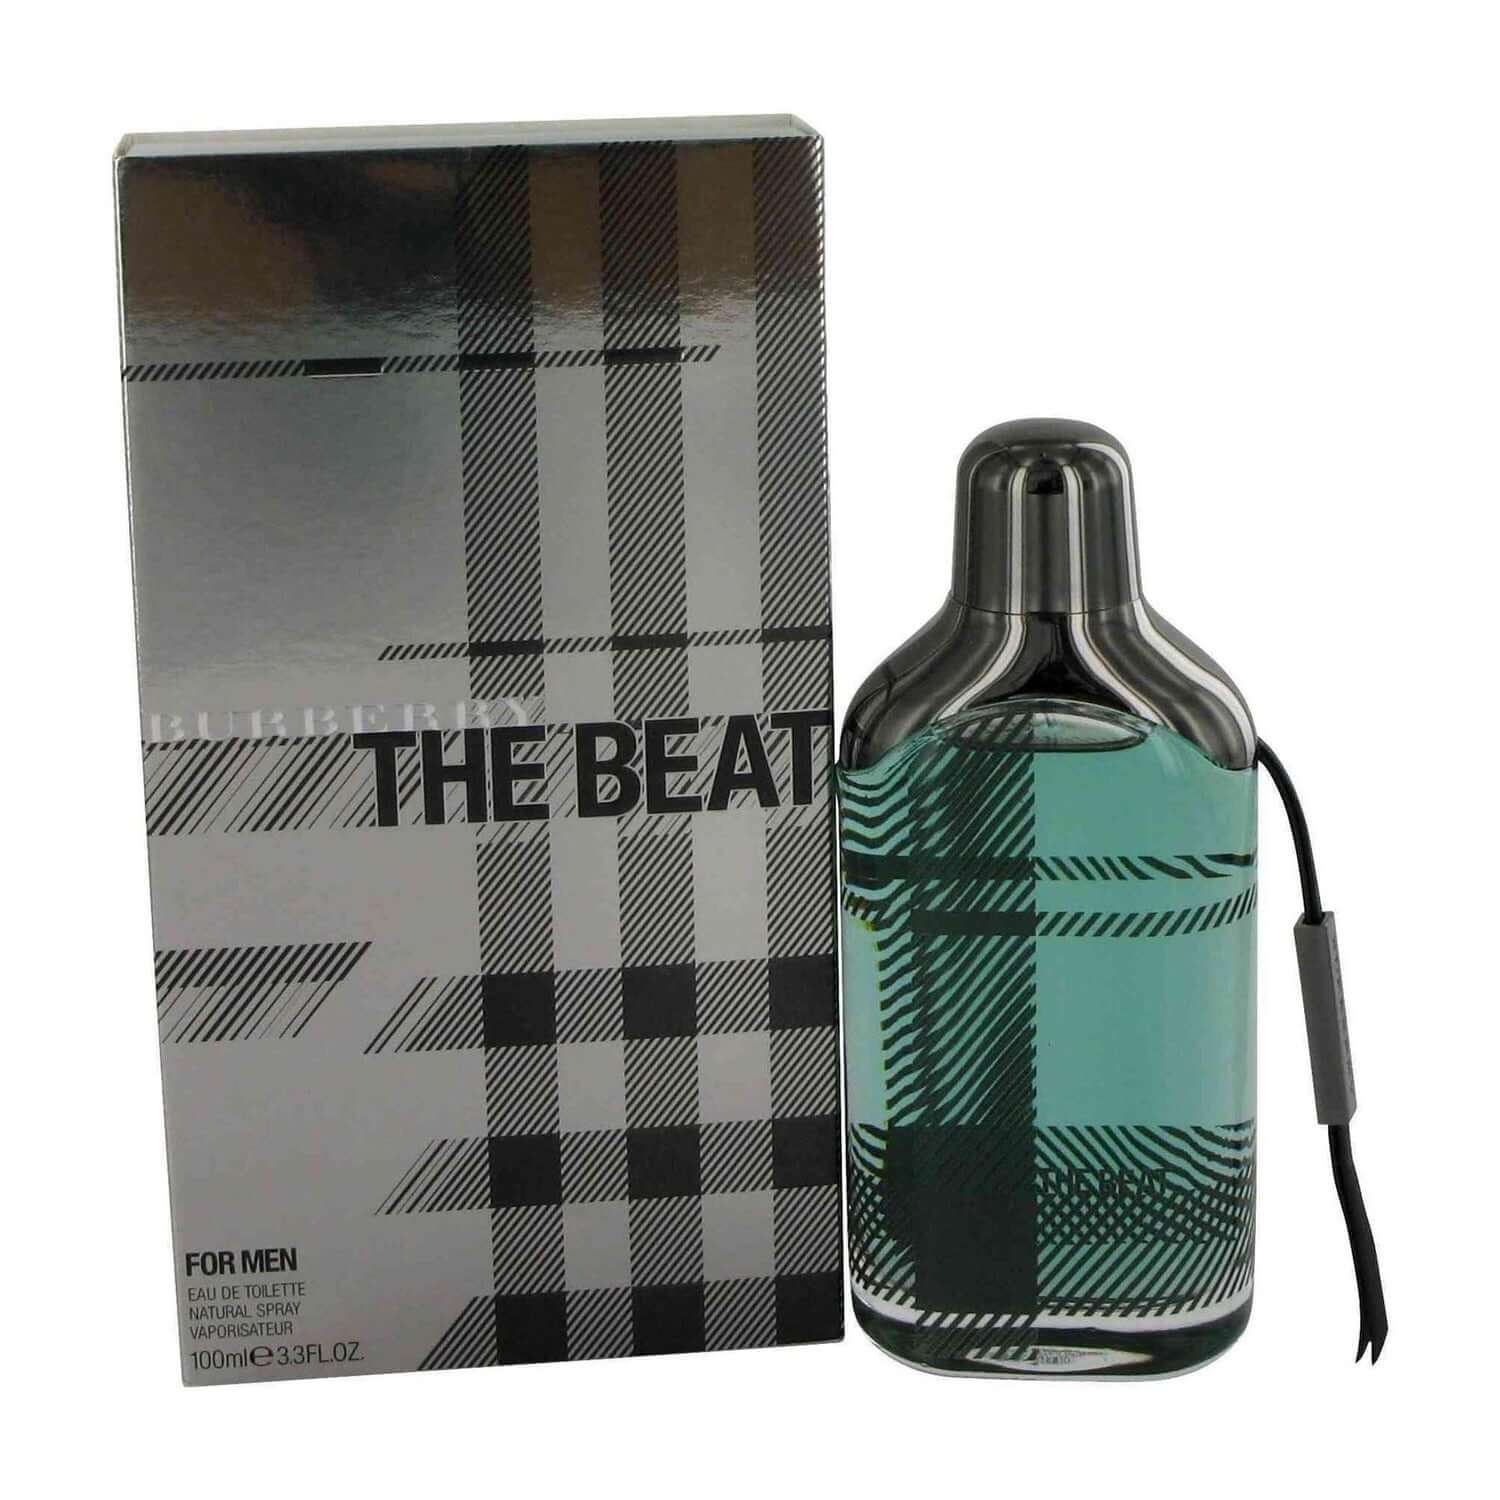 burberry-the-beat-for-men-cologne-3-3-oz-3-4-new-in-box